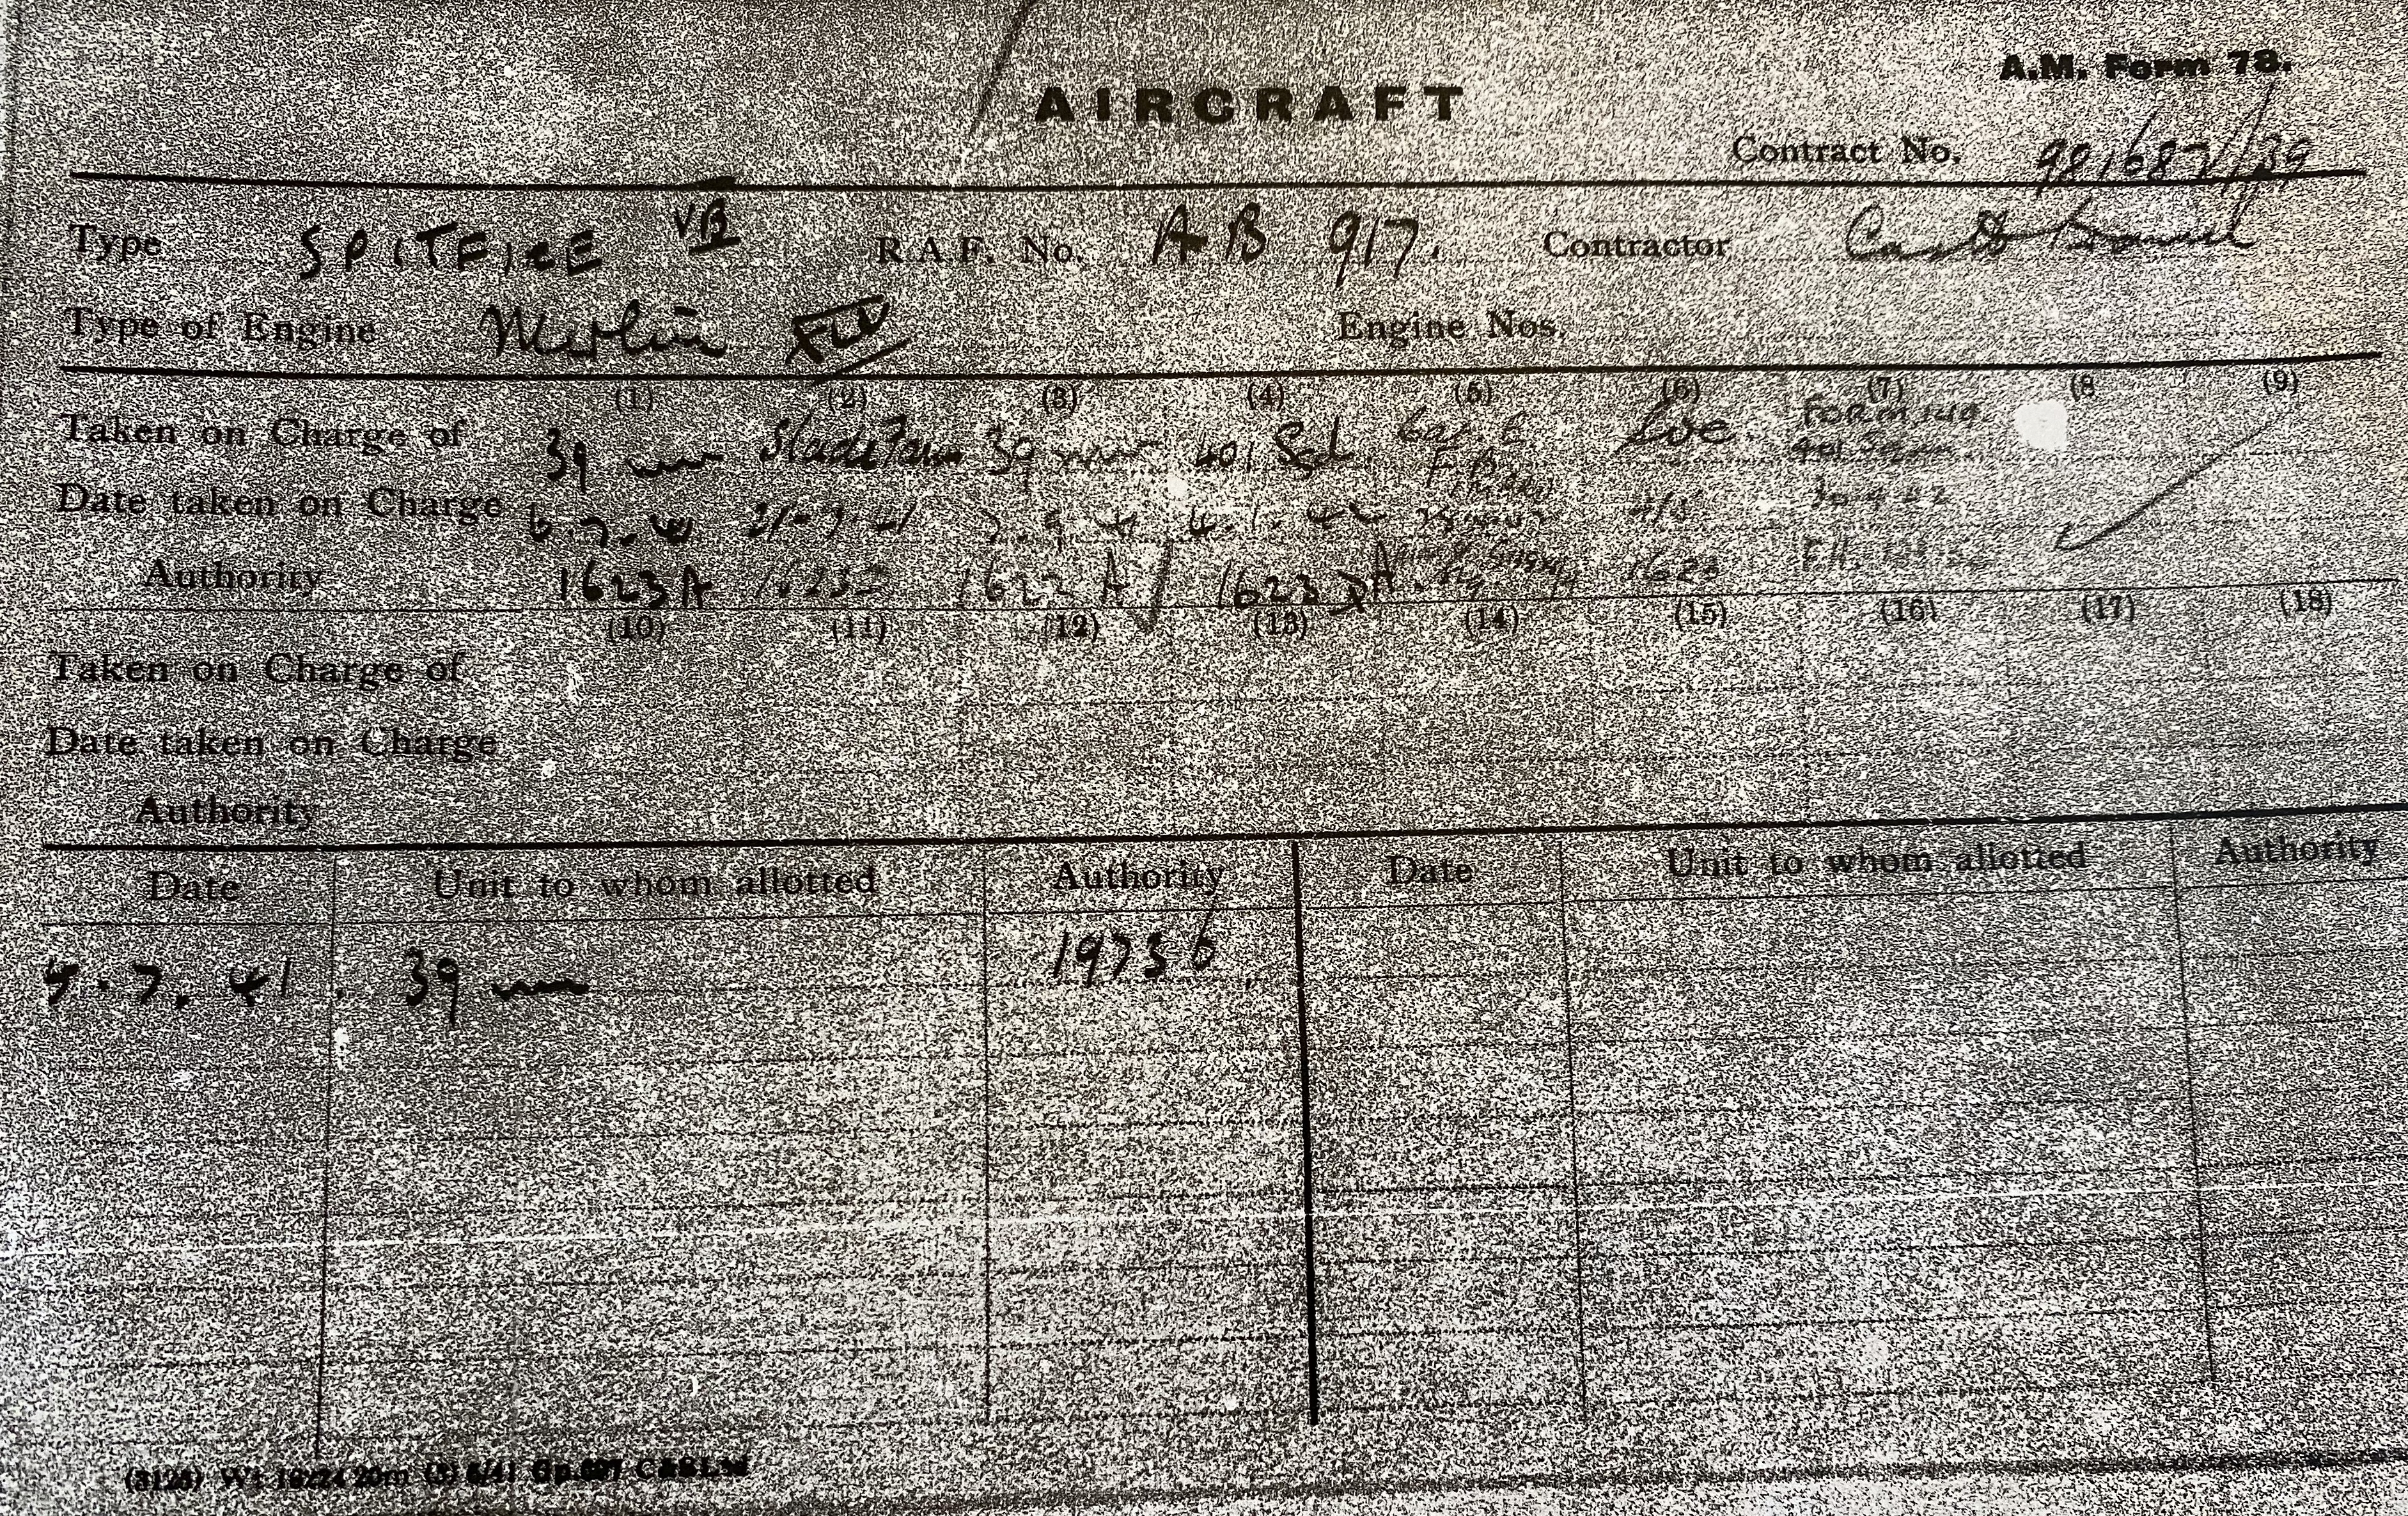 Official service record of Spitfire AB917 – The Inspirer – attributed to the Express & Star fund